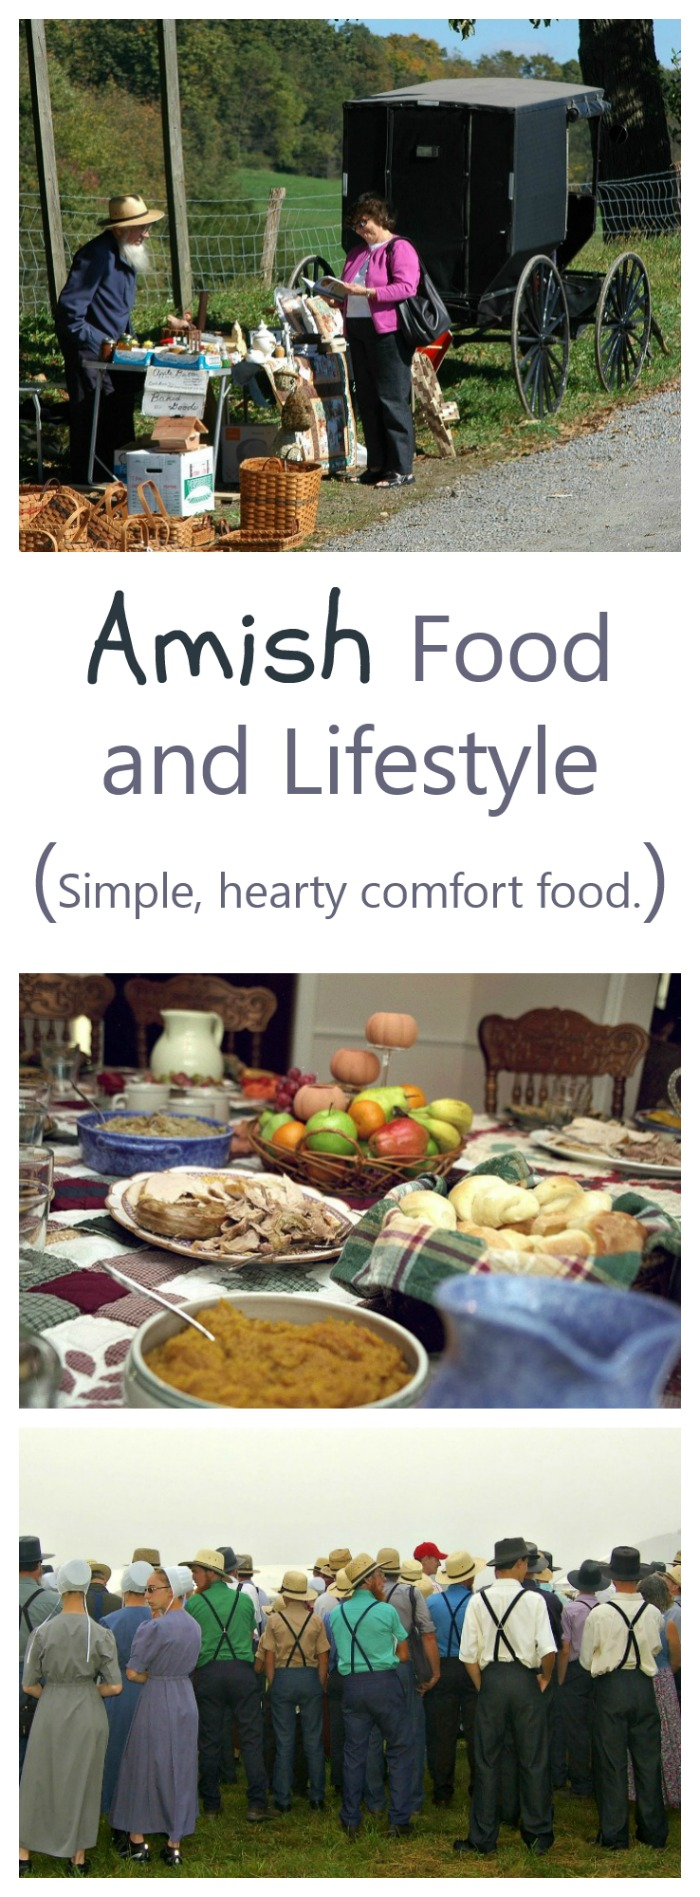 The Food and lifestyle of the Amish is simple, and hearty.